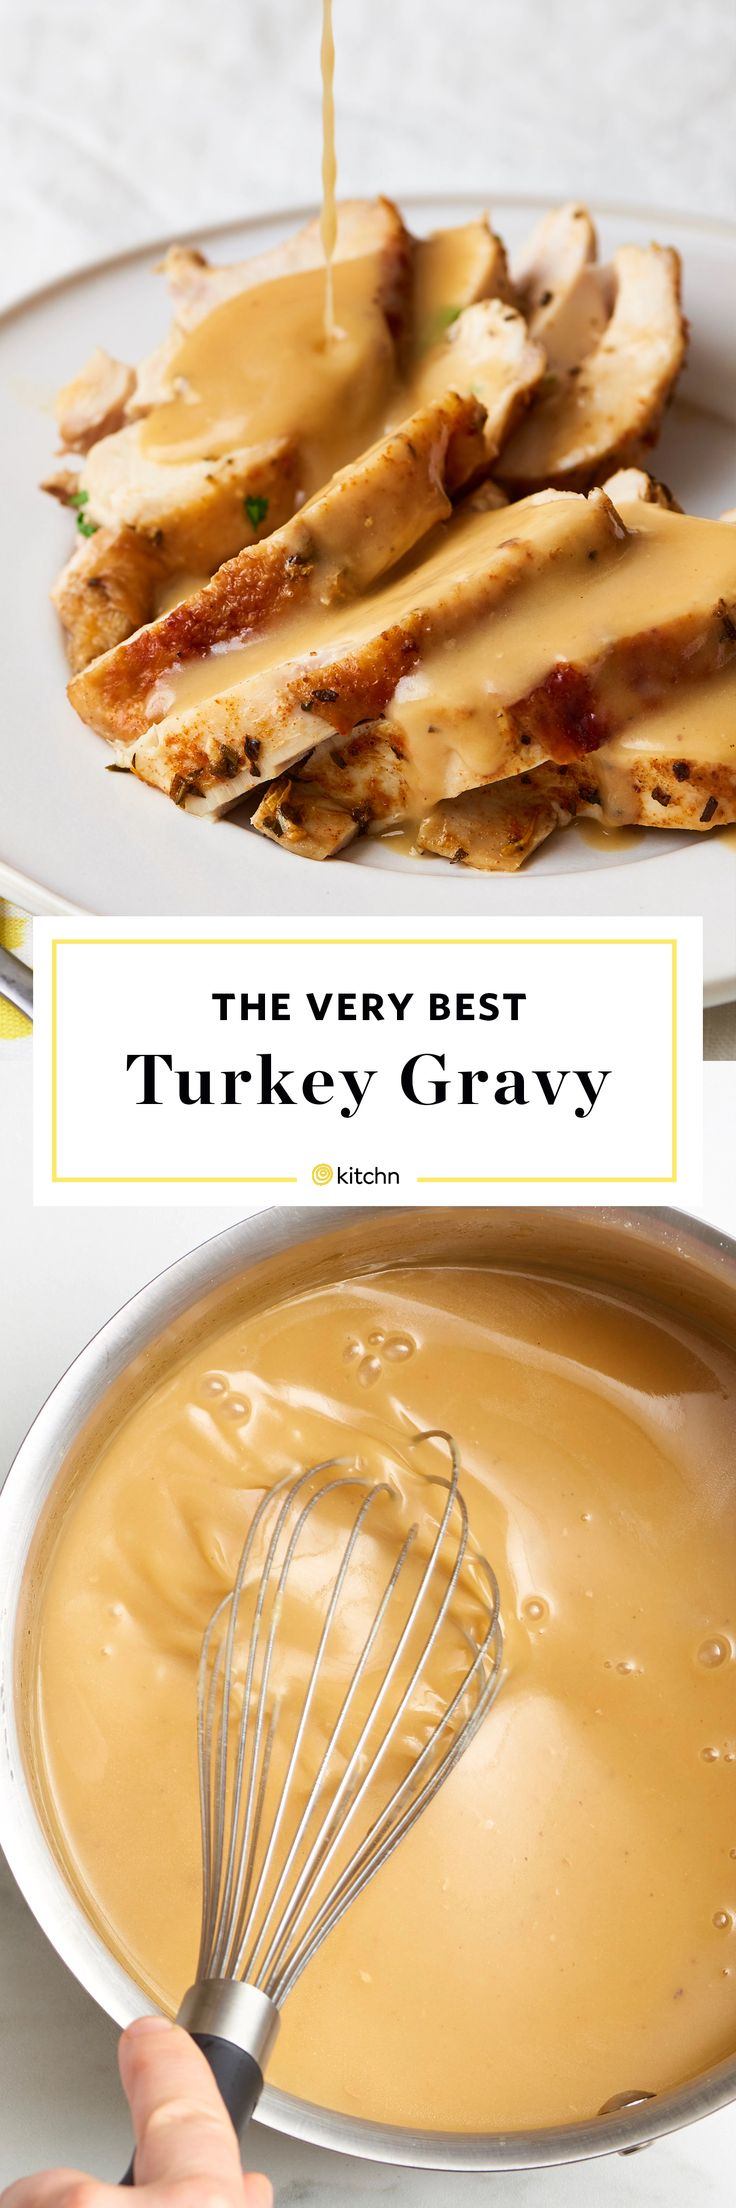 How To Make Turkey Gravy for Thanksgiving — Cooking Lessons from The Kitchn